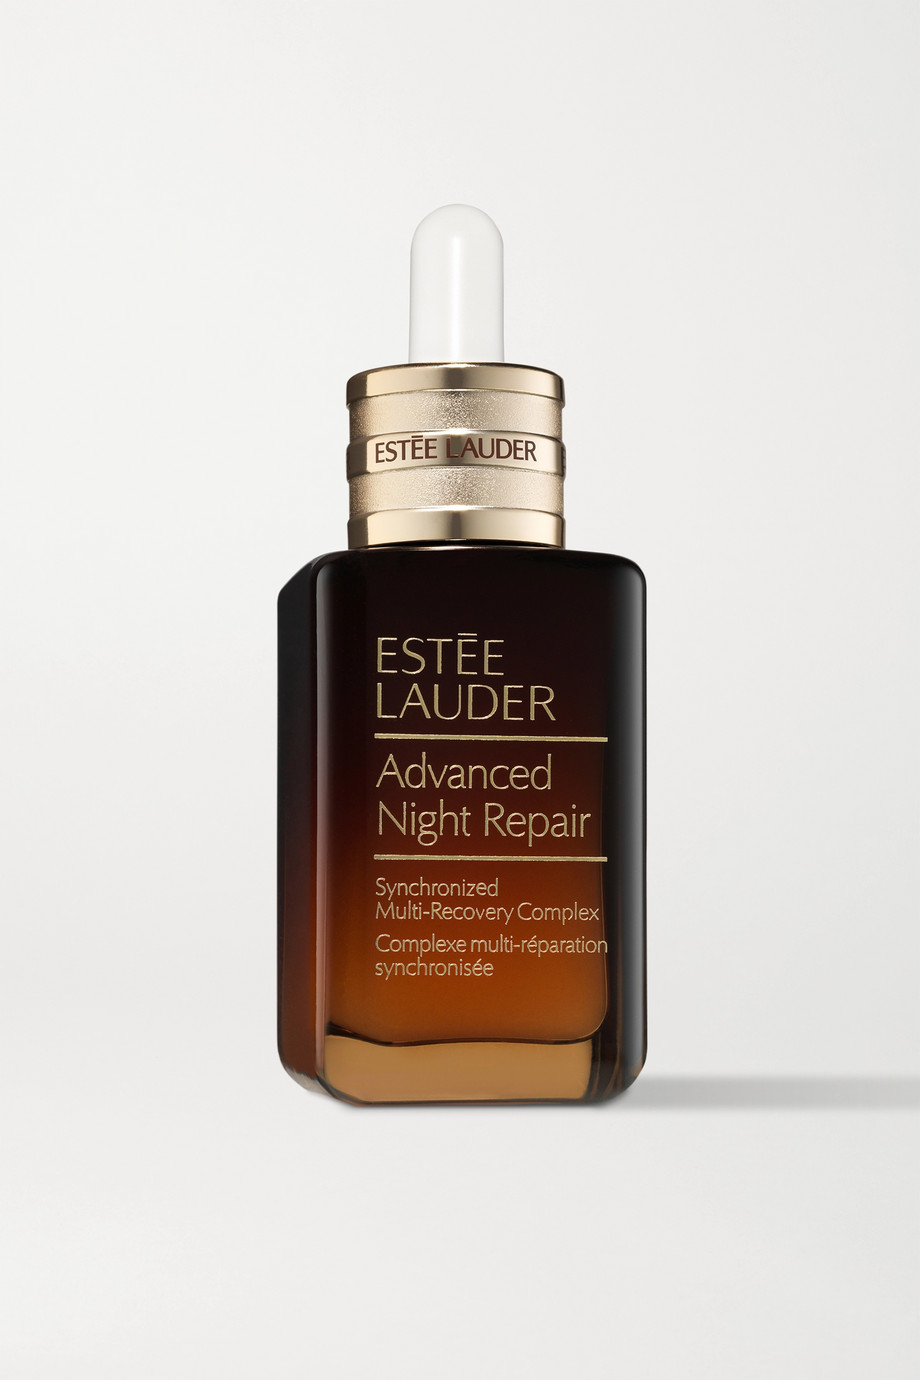 Estée Lauder Advanced Night Repair Synchronized Multi-Recovery Complex, 30ml